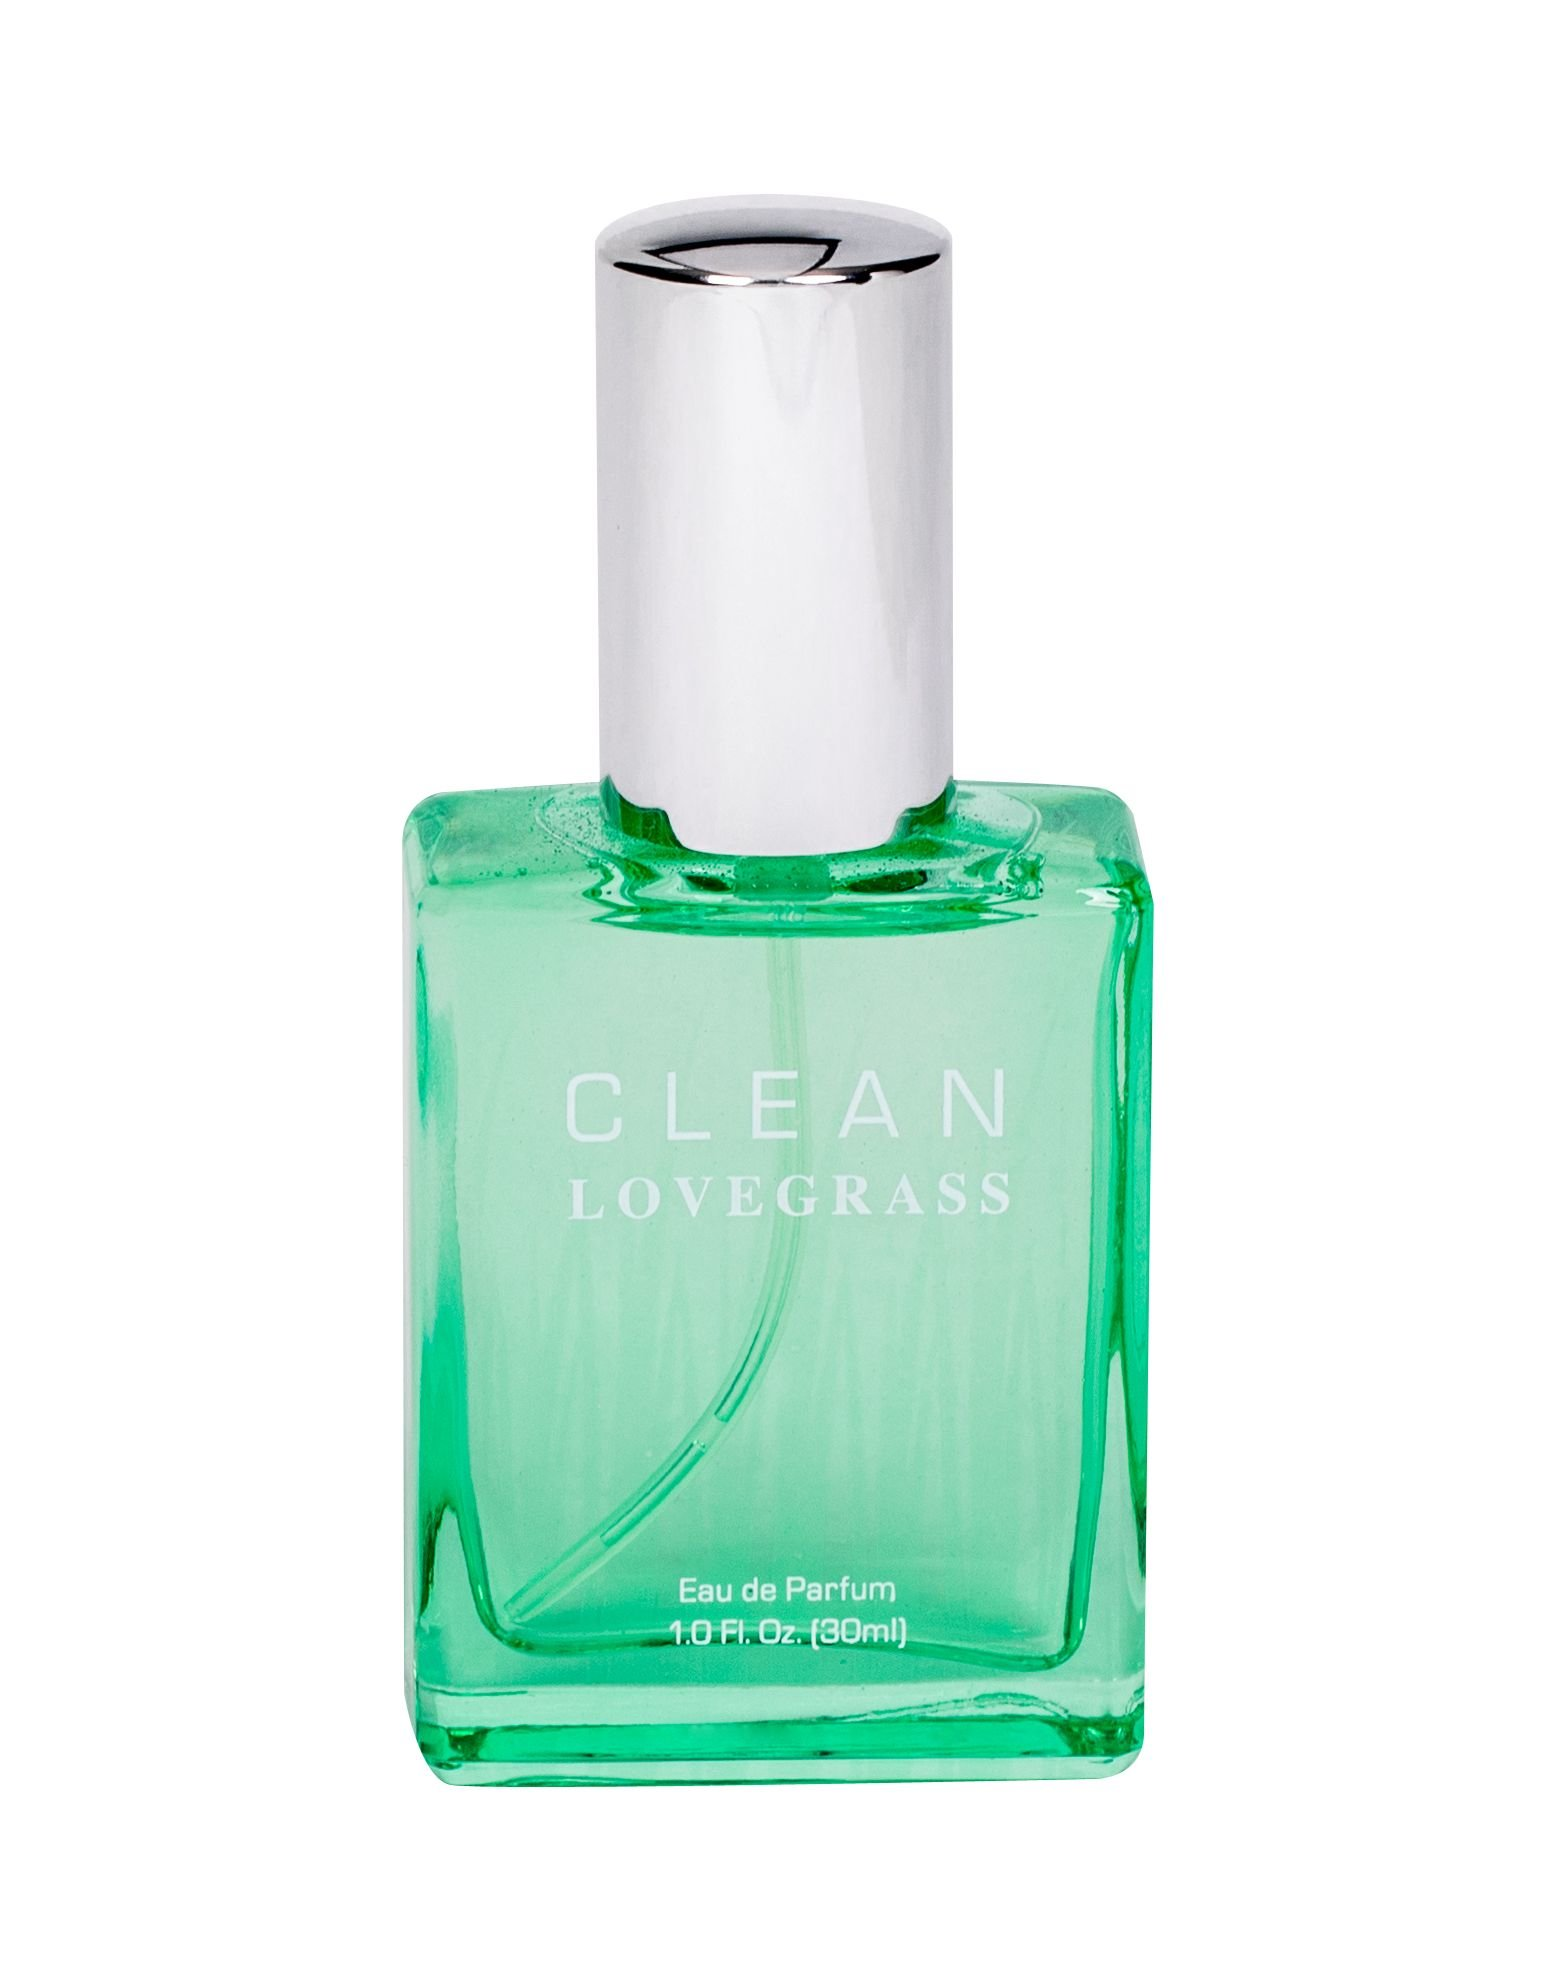 Clean Lovegrass Eau de Parfum 30ml